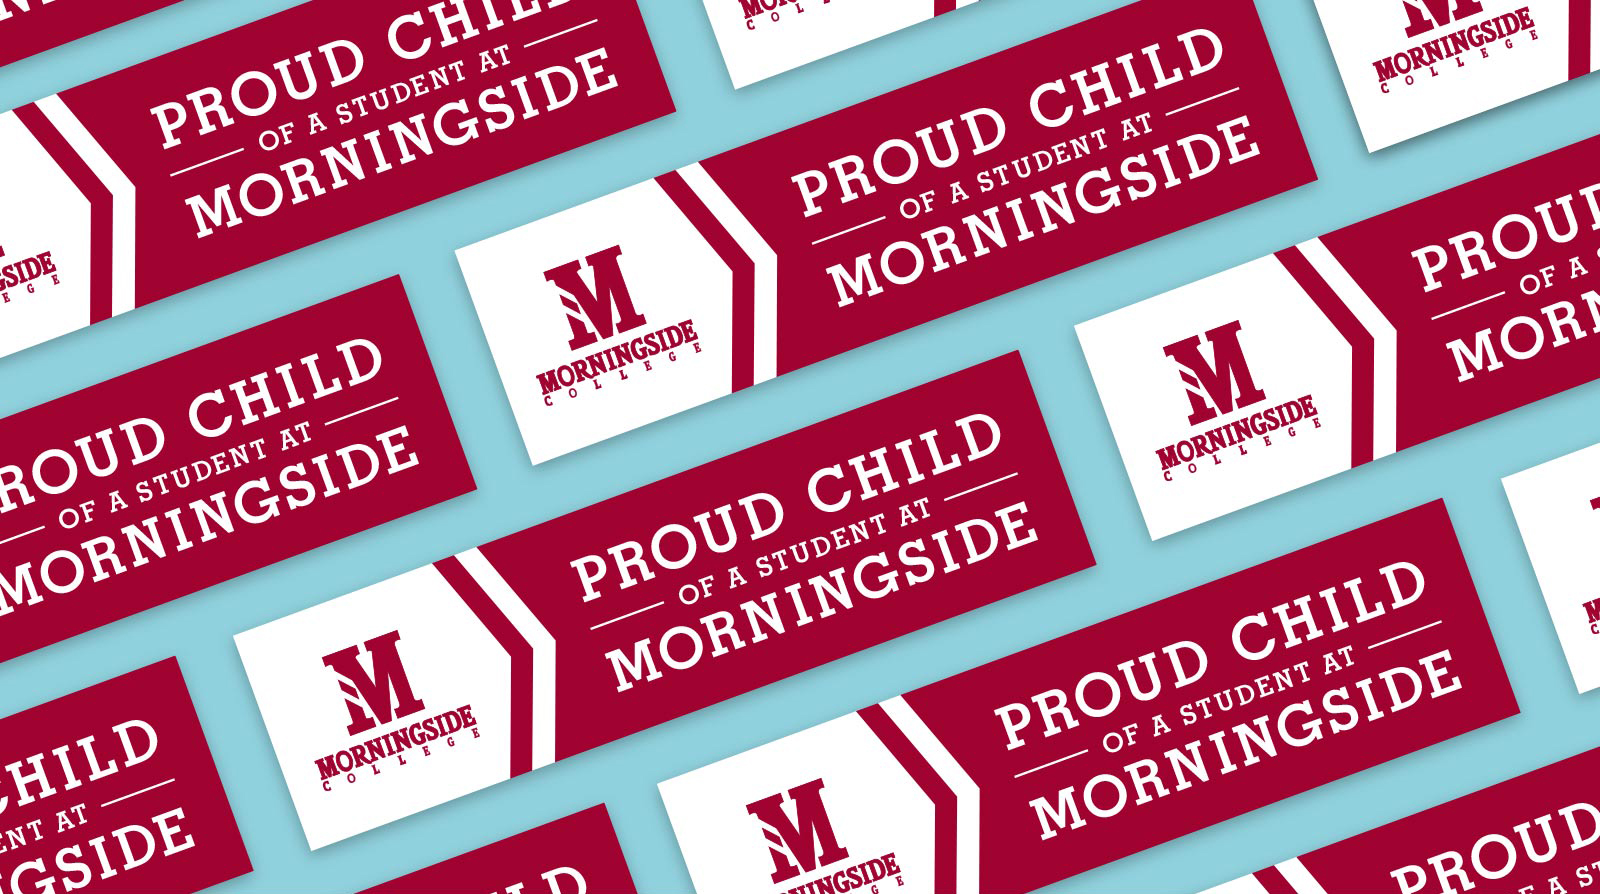 Morningside College bumpersticker